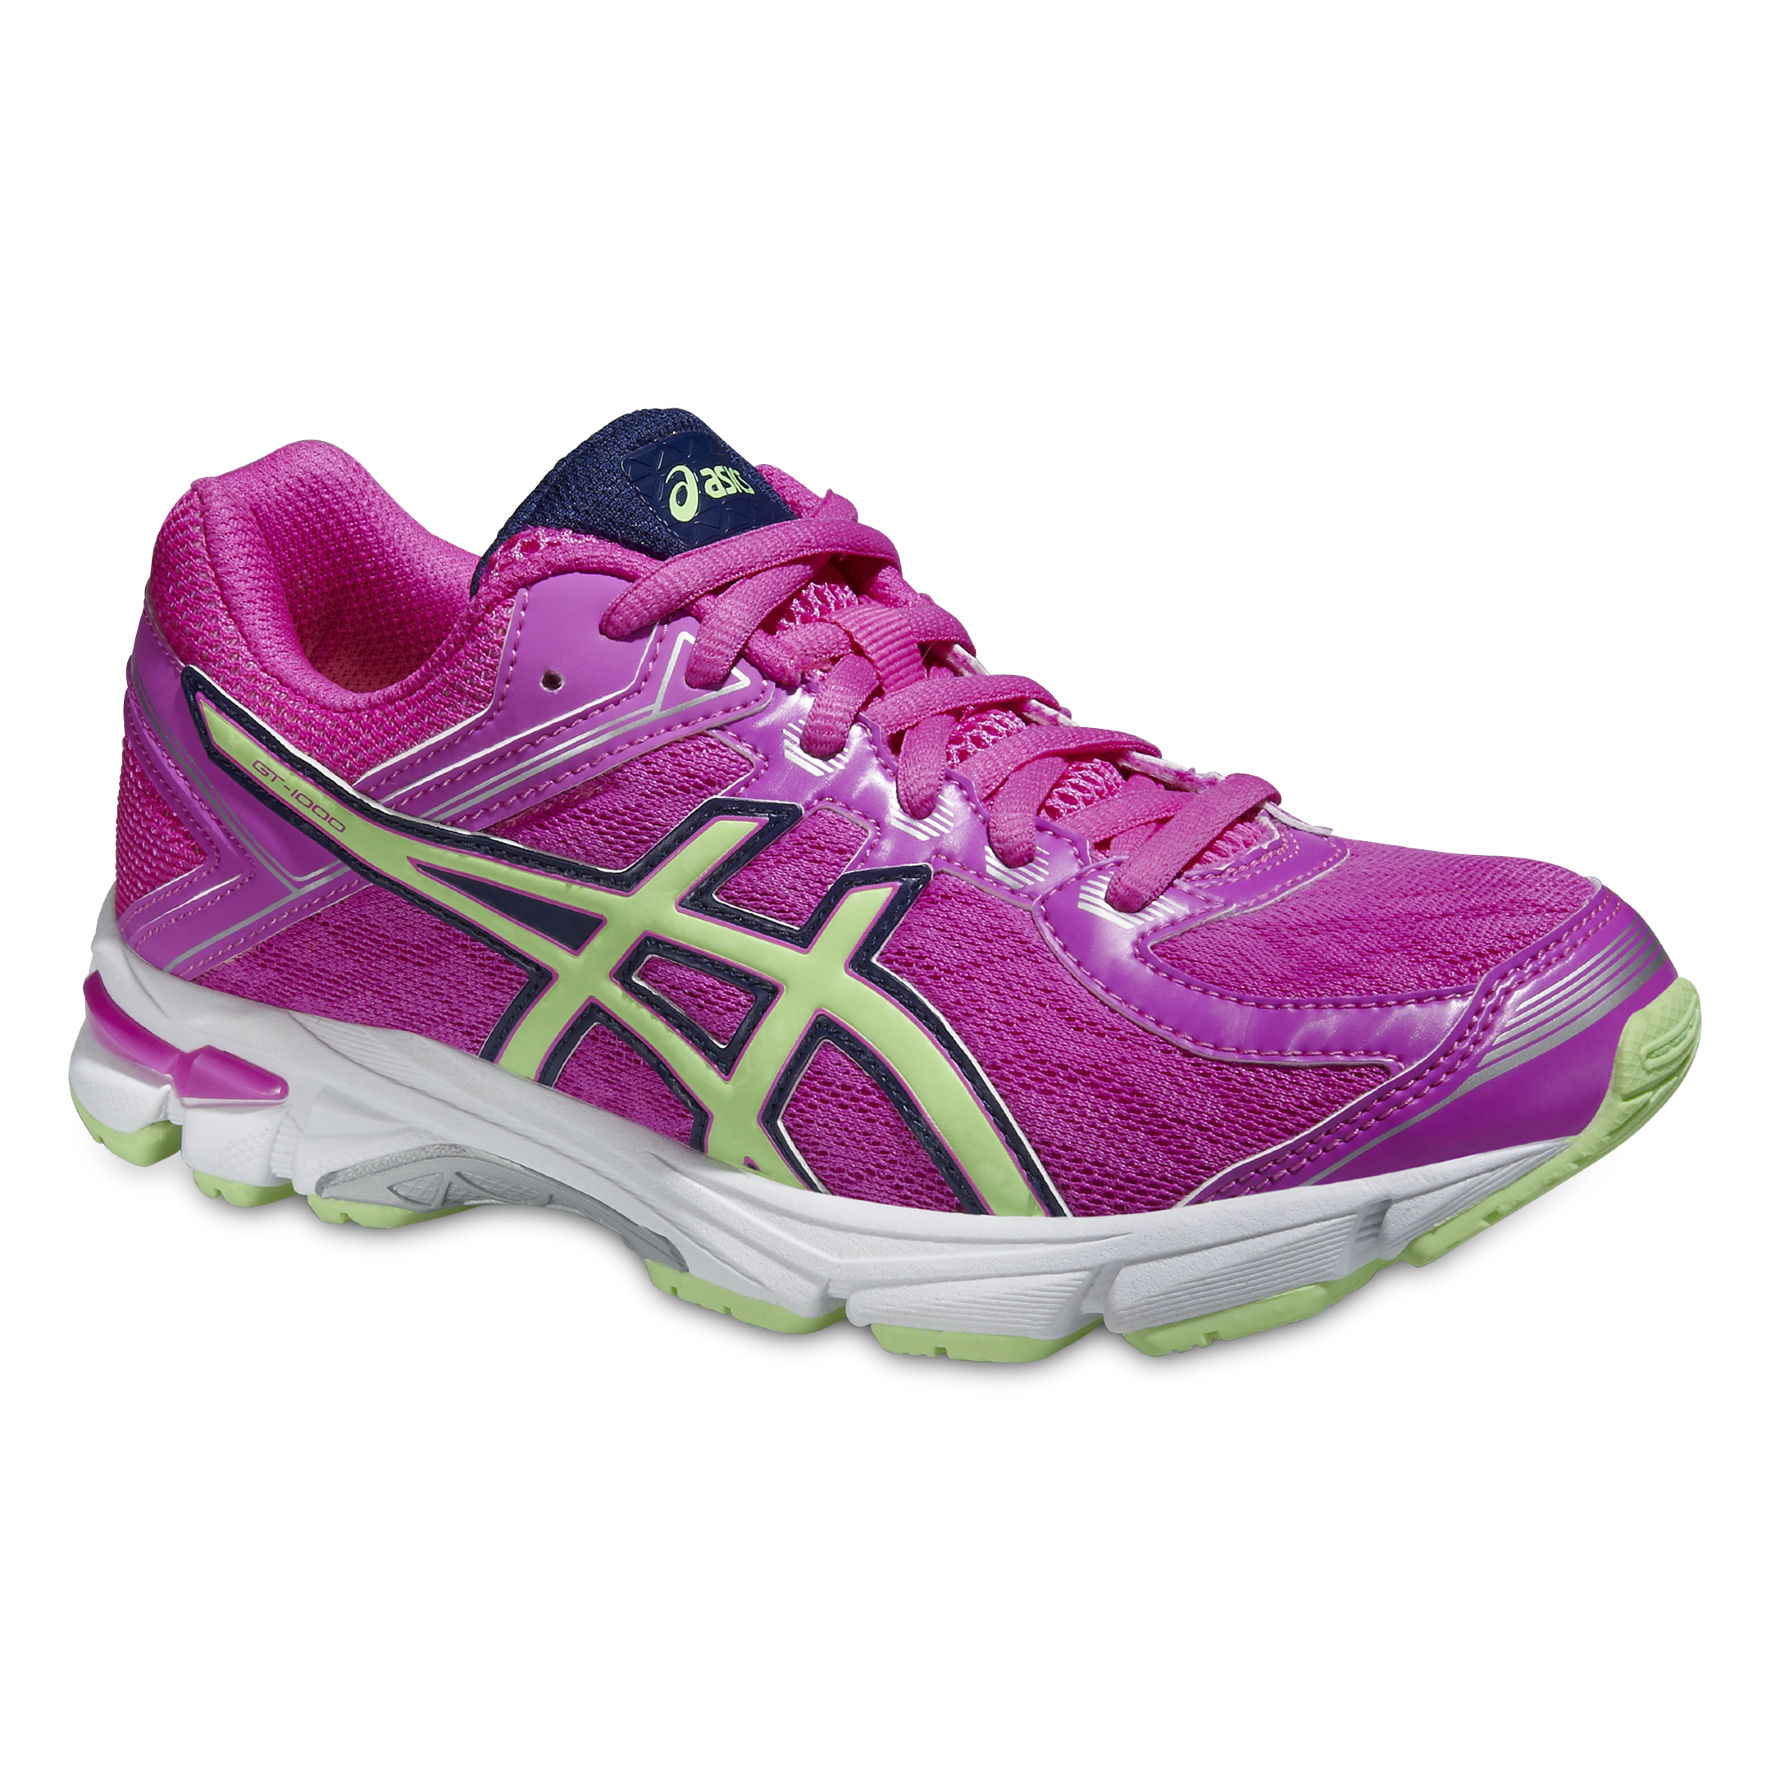 Asics GT-1000 4 GS in Pink